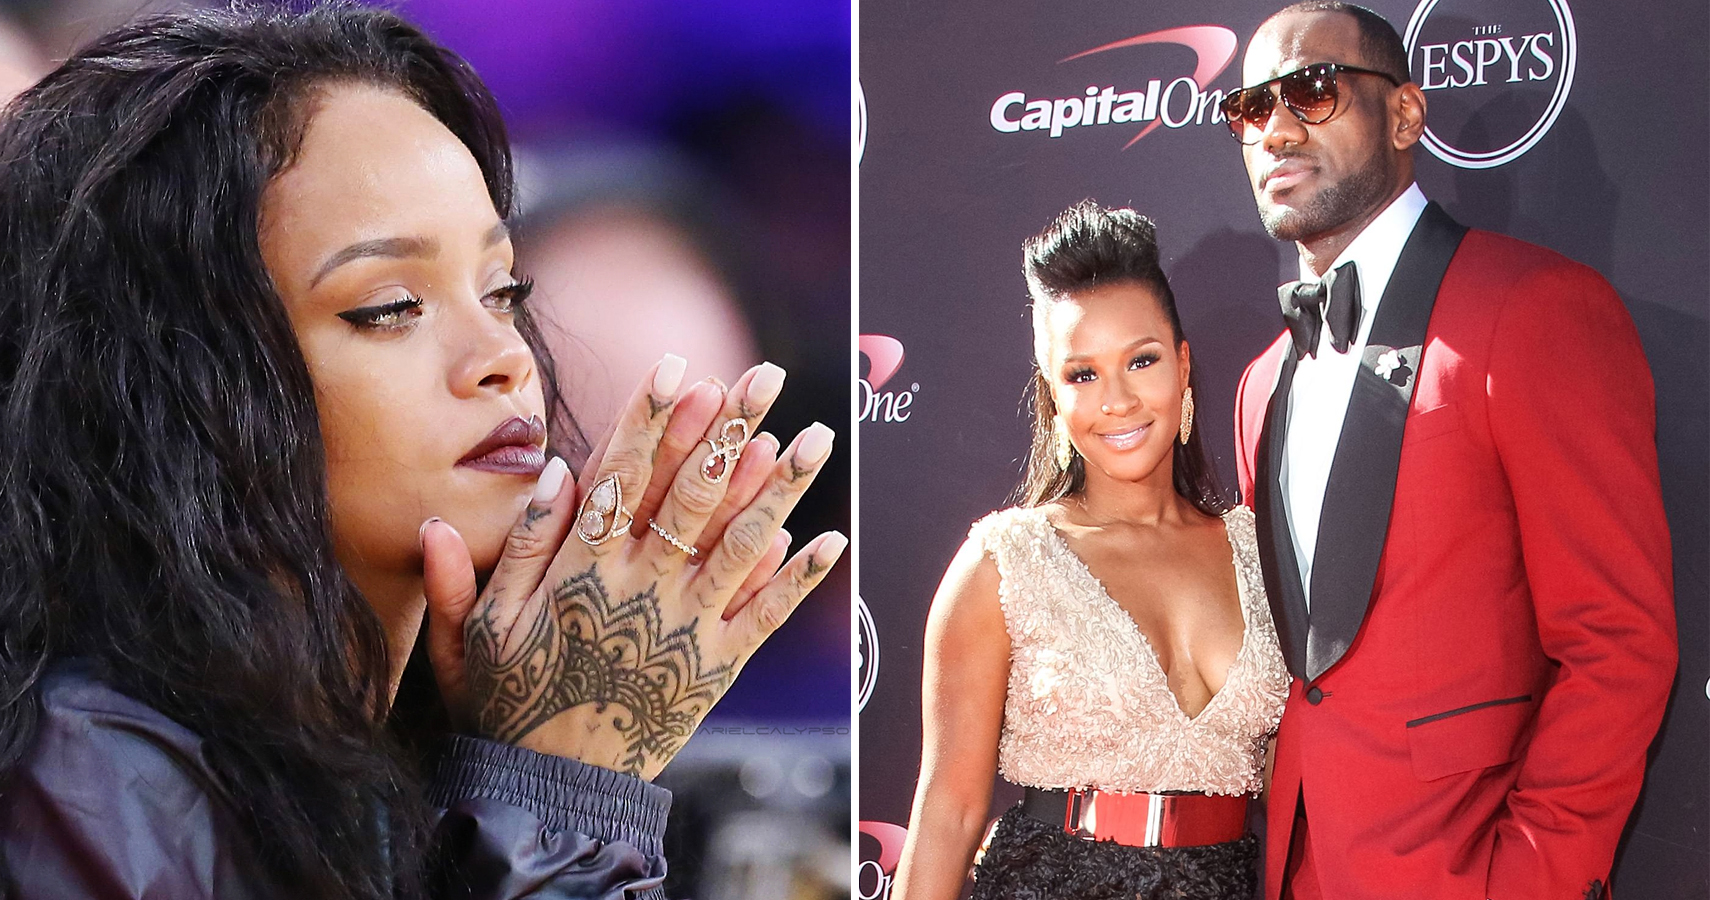 Courting The King: 15 Things You Didnu0027t Know About LeBron Jamesu0027 Marriage